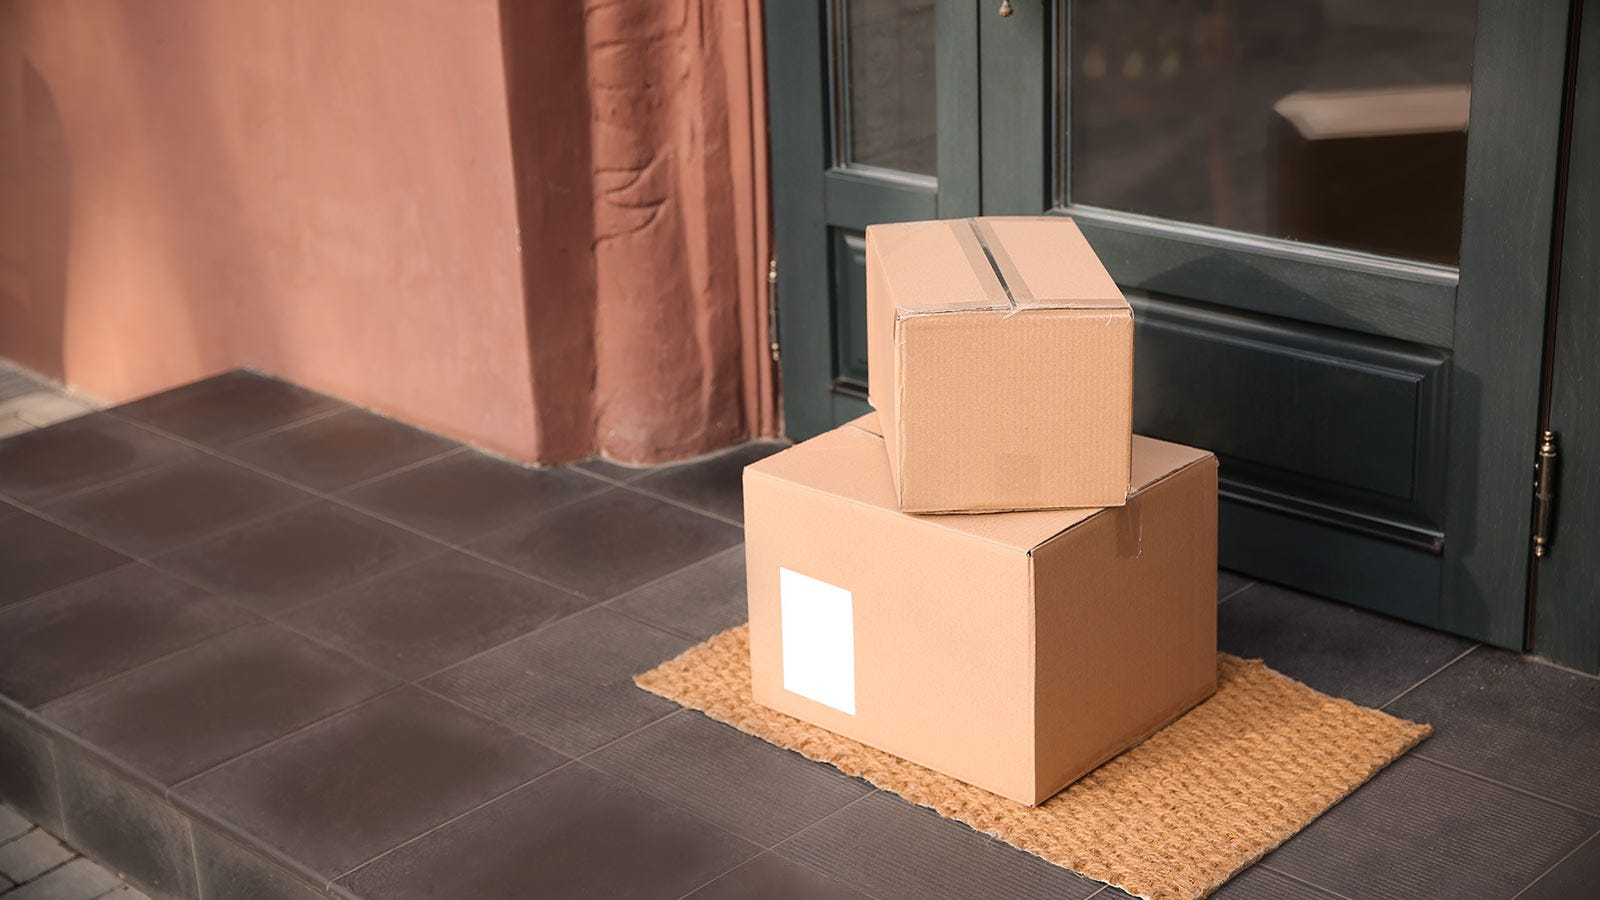 Two cardboard boxes sitting on a porch.